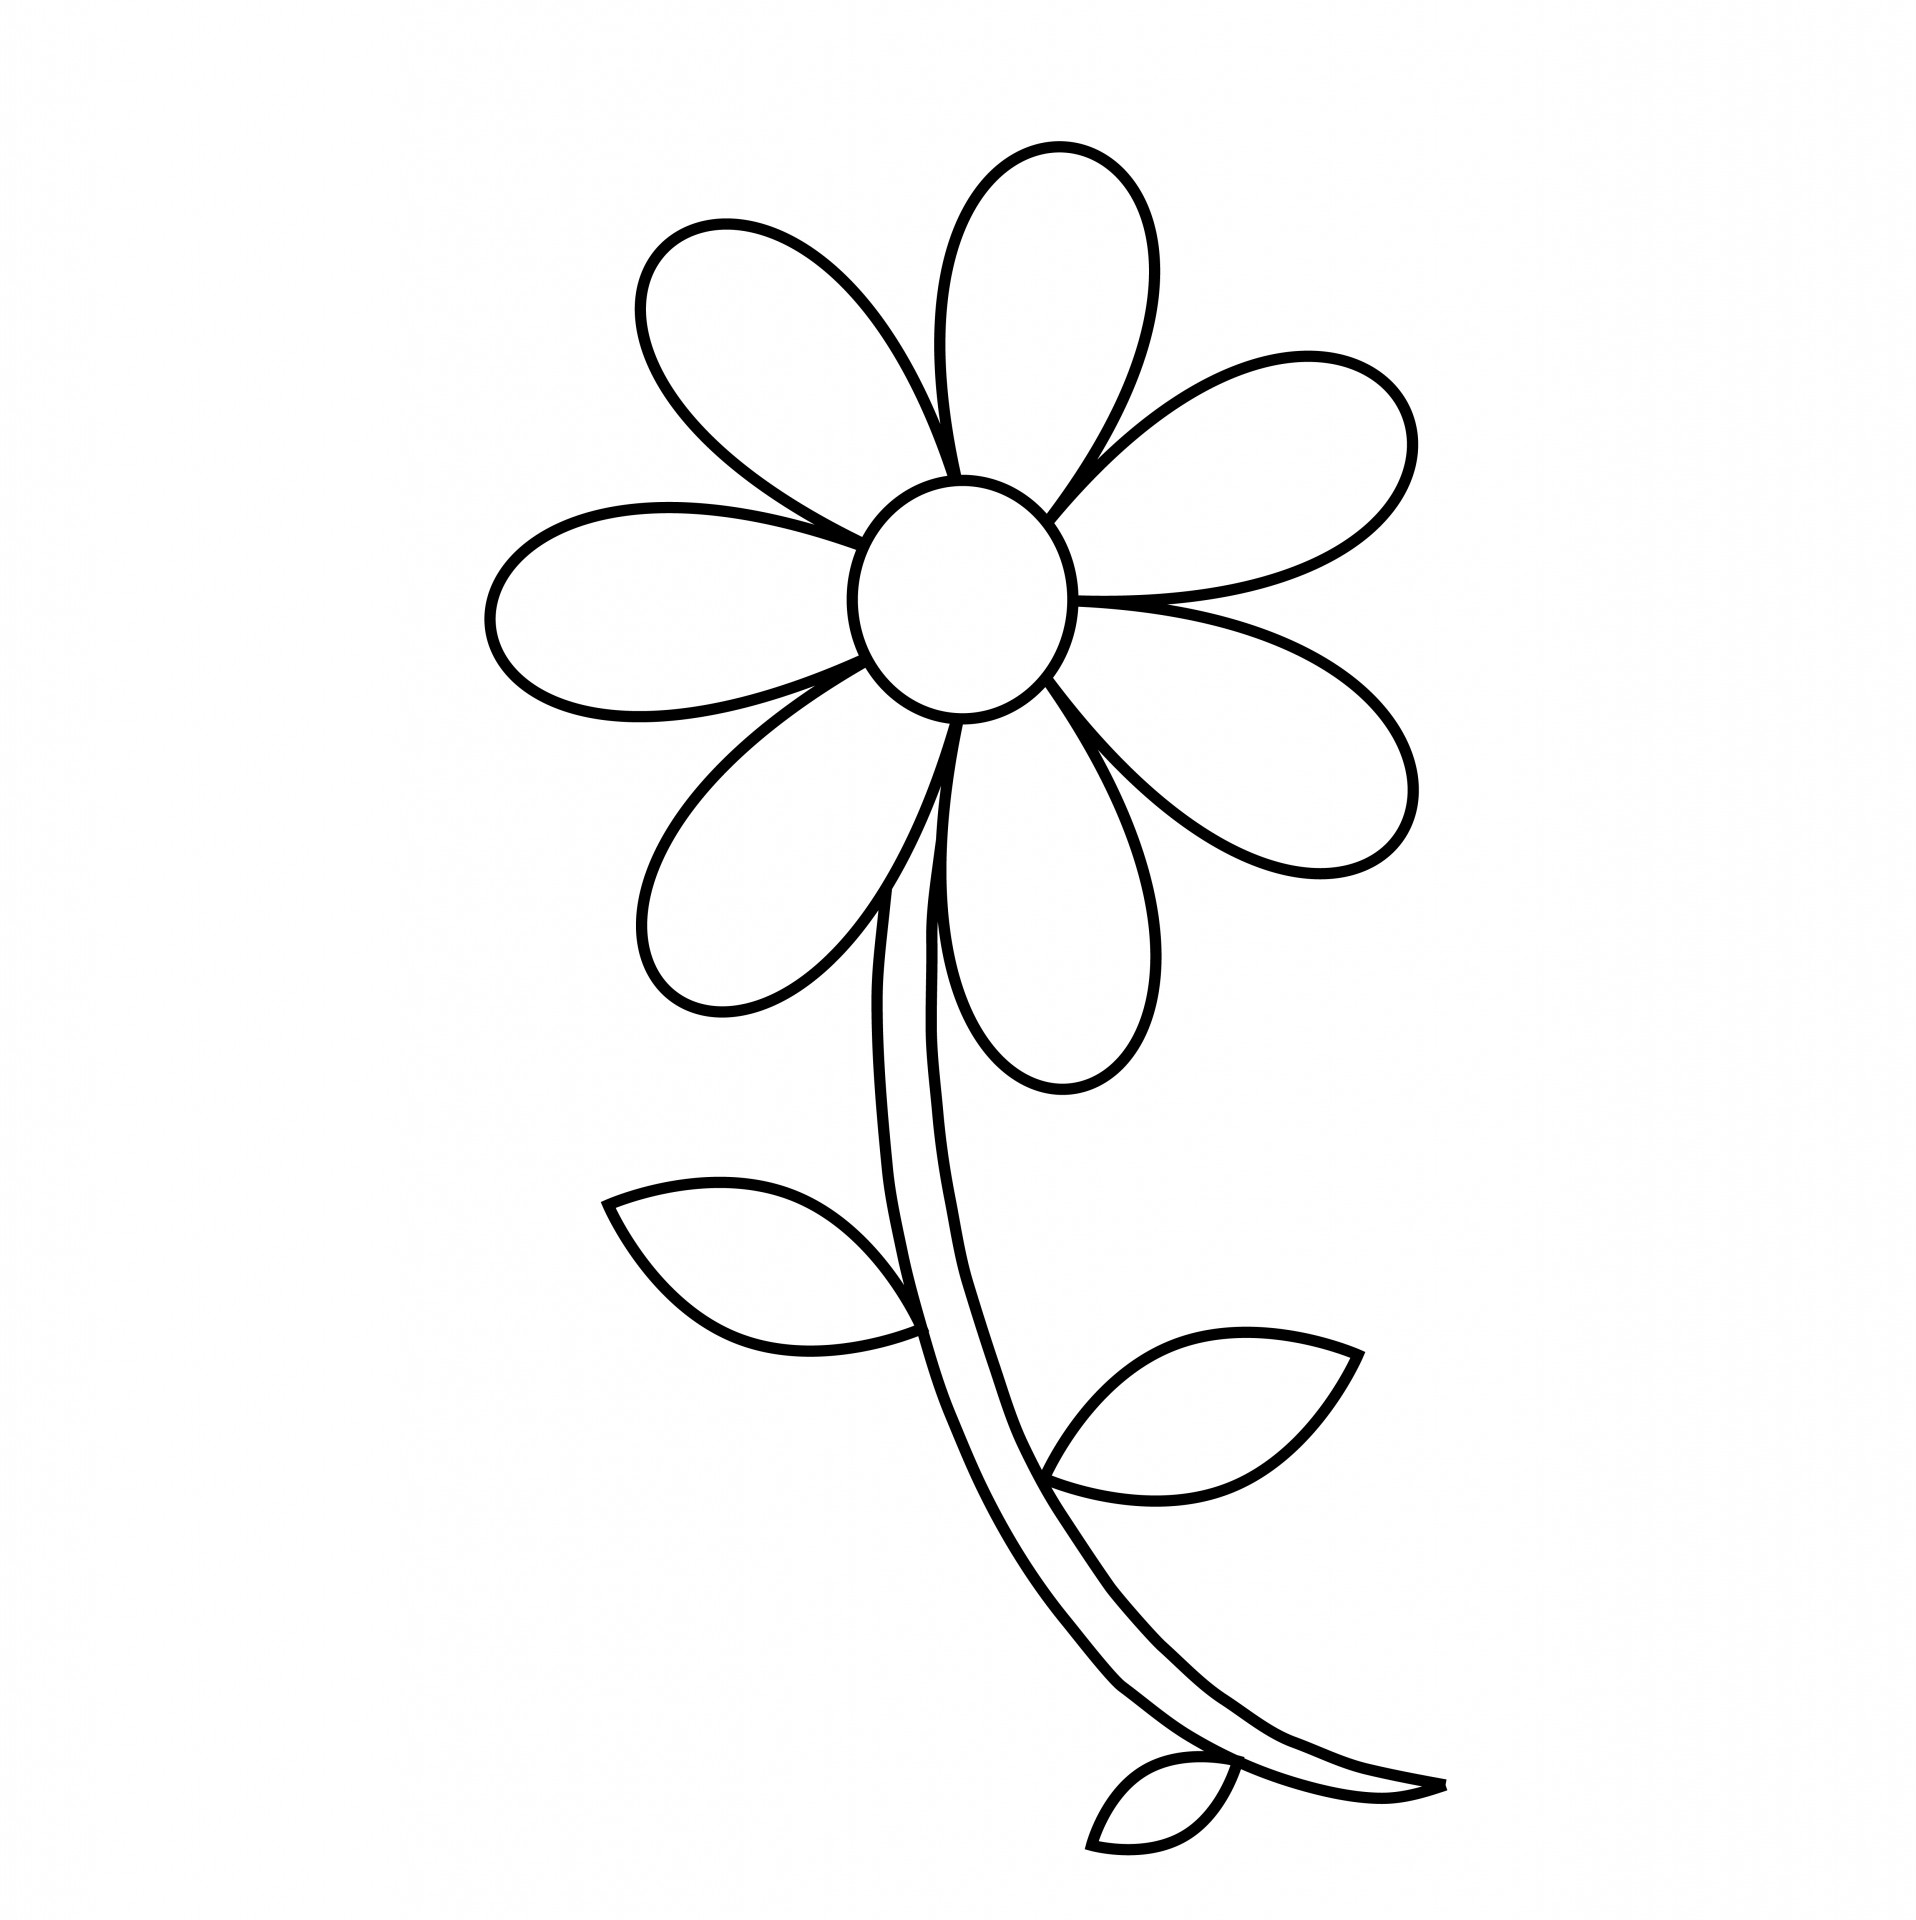 Flower Outline Coloring Page Free Stock Photo